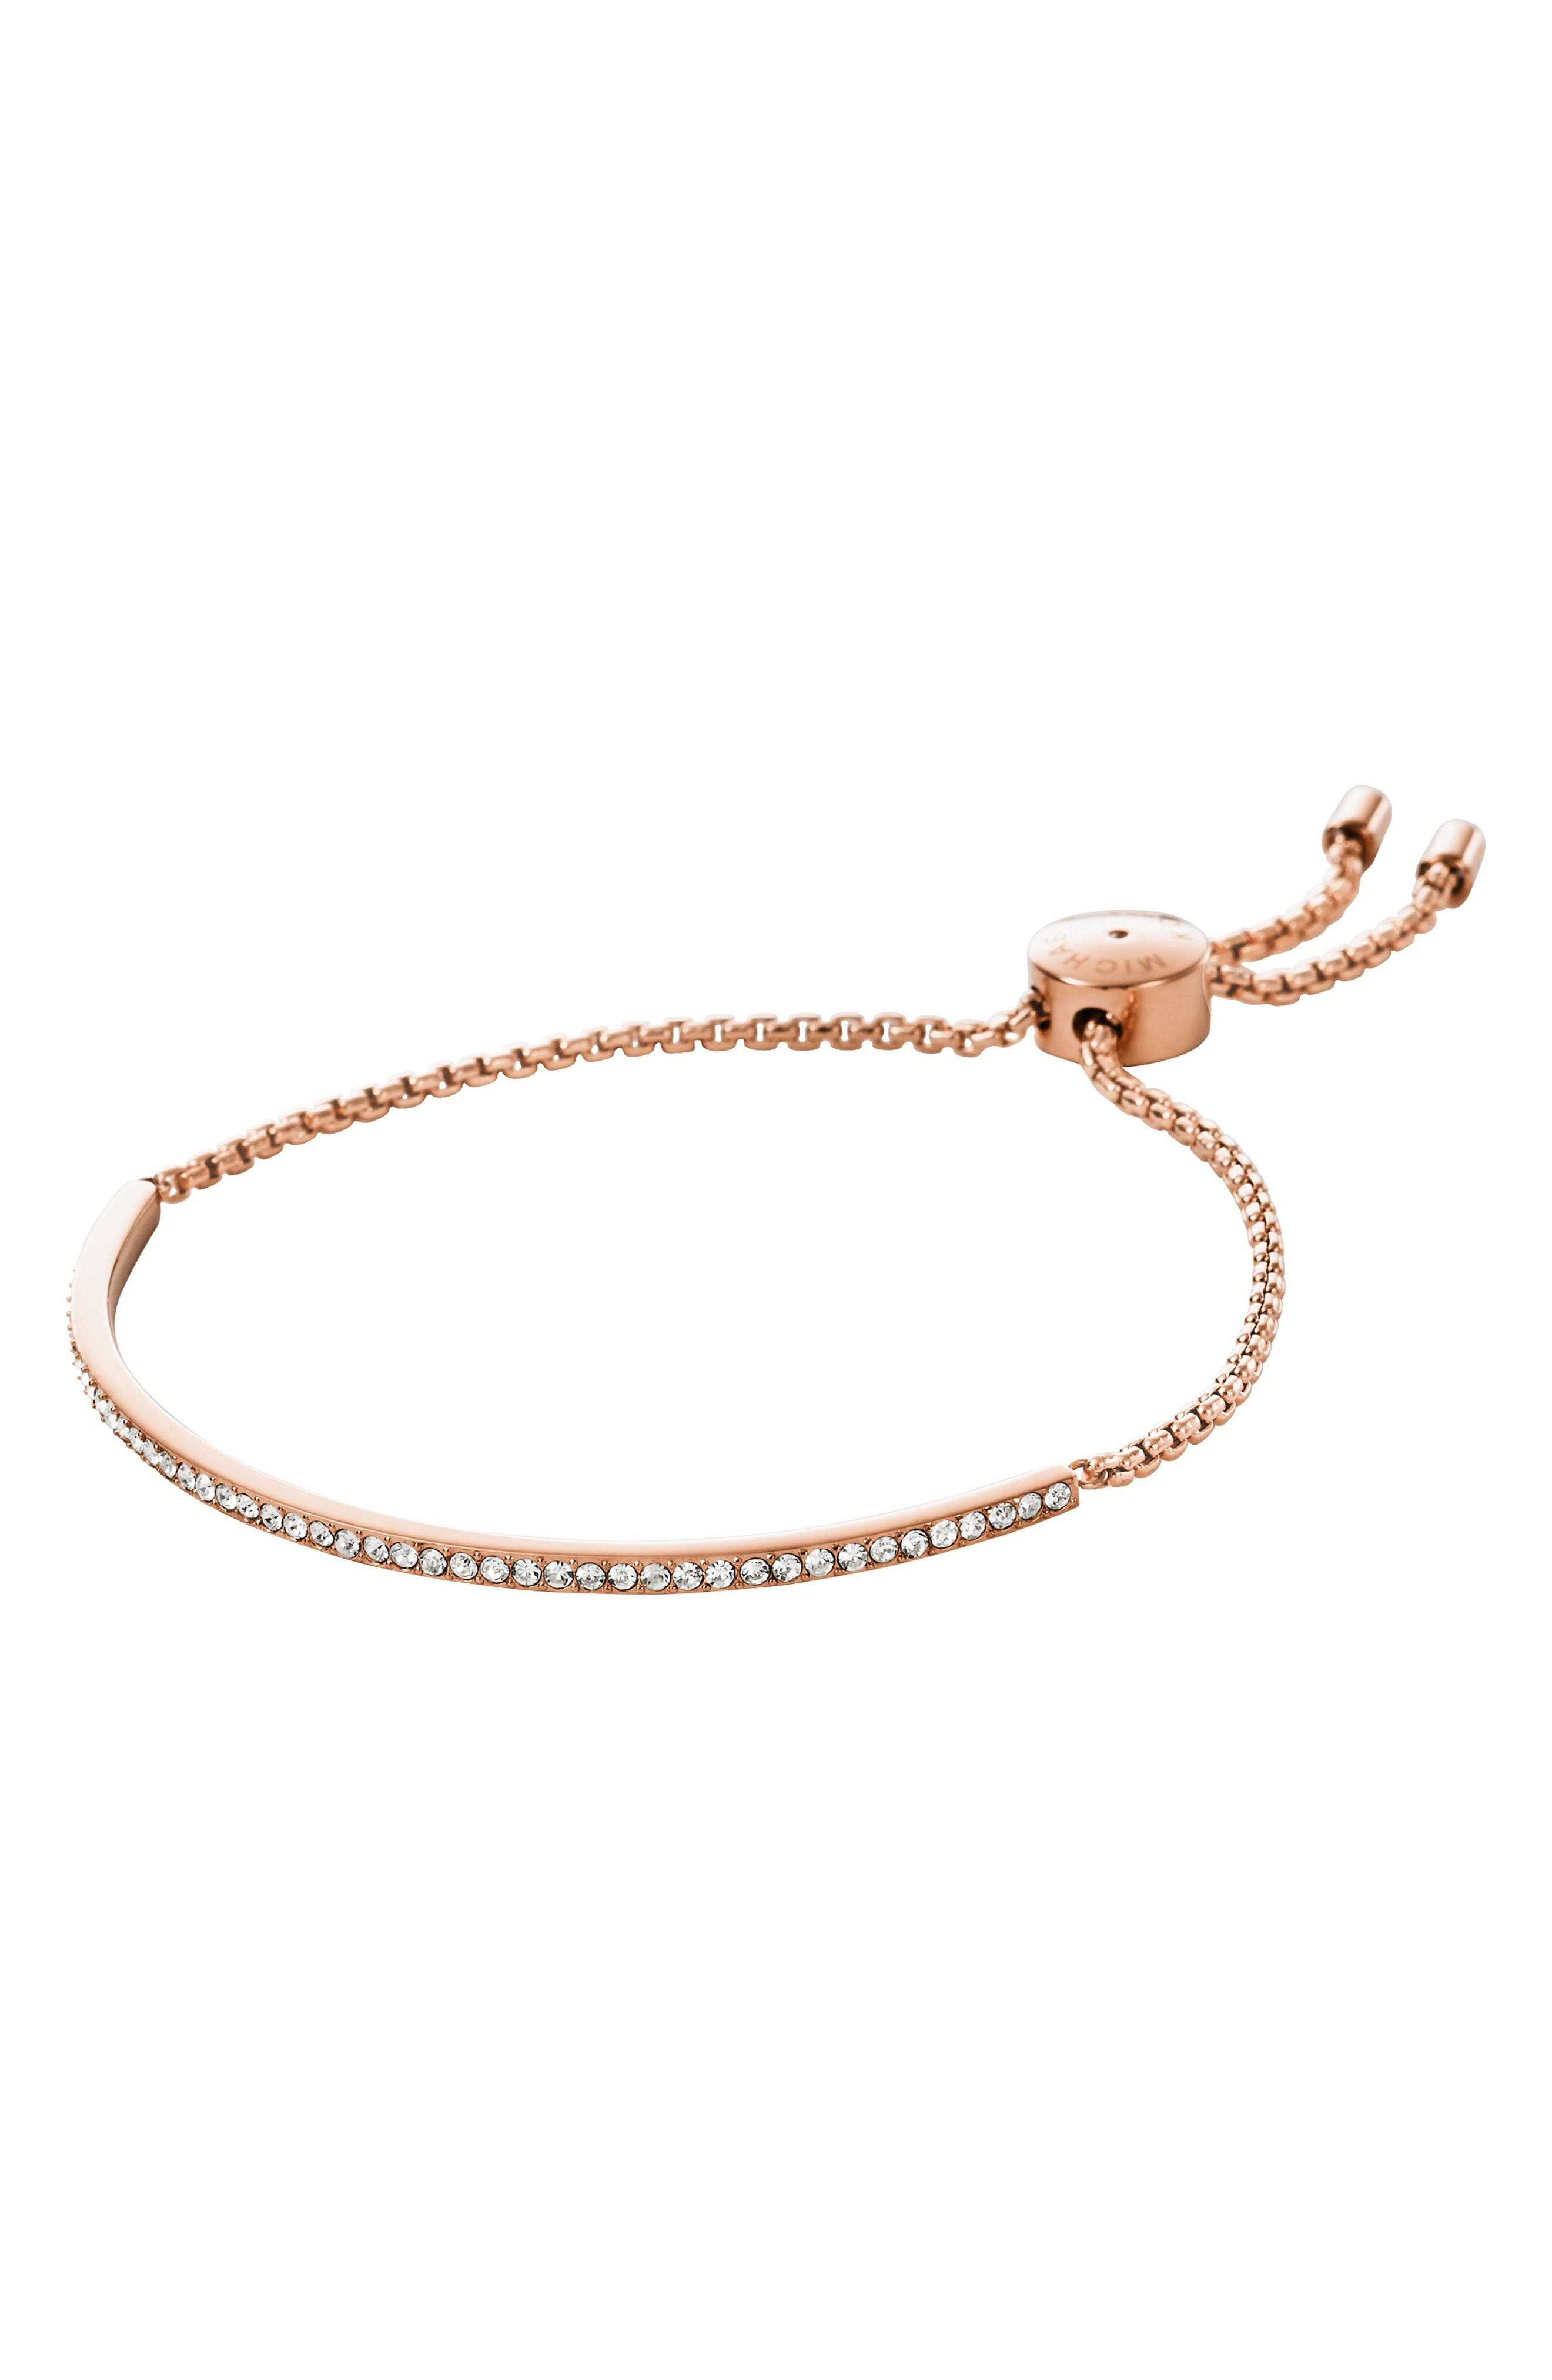 Alternate Image 1 Selected - Michael Kors Crystal Skinny Bracelet